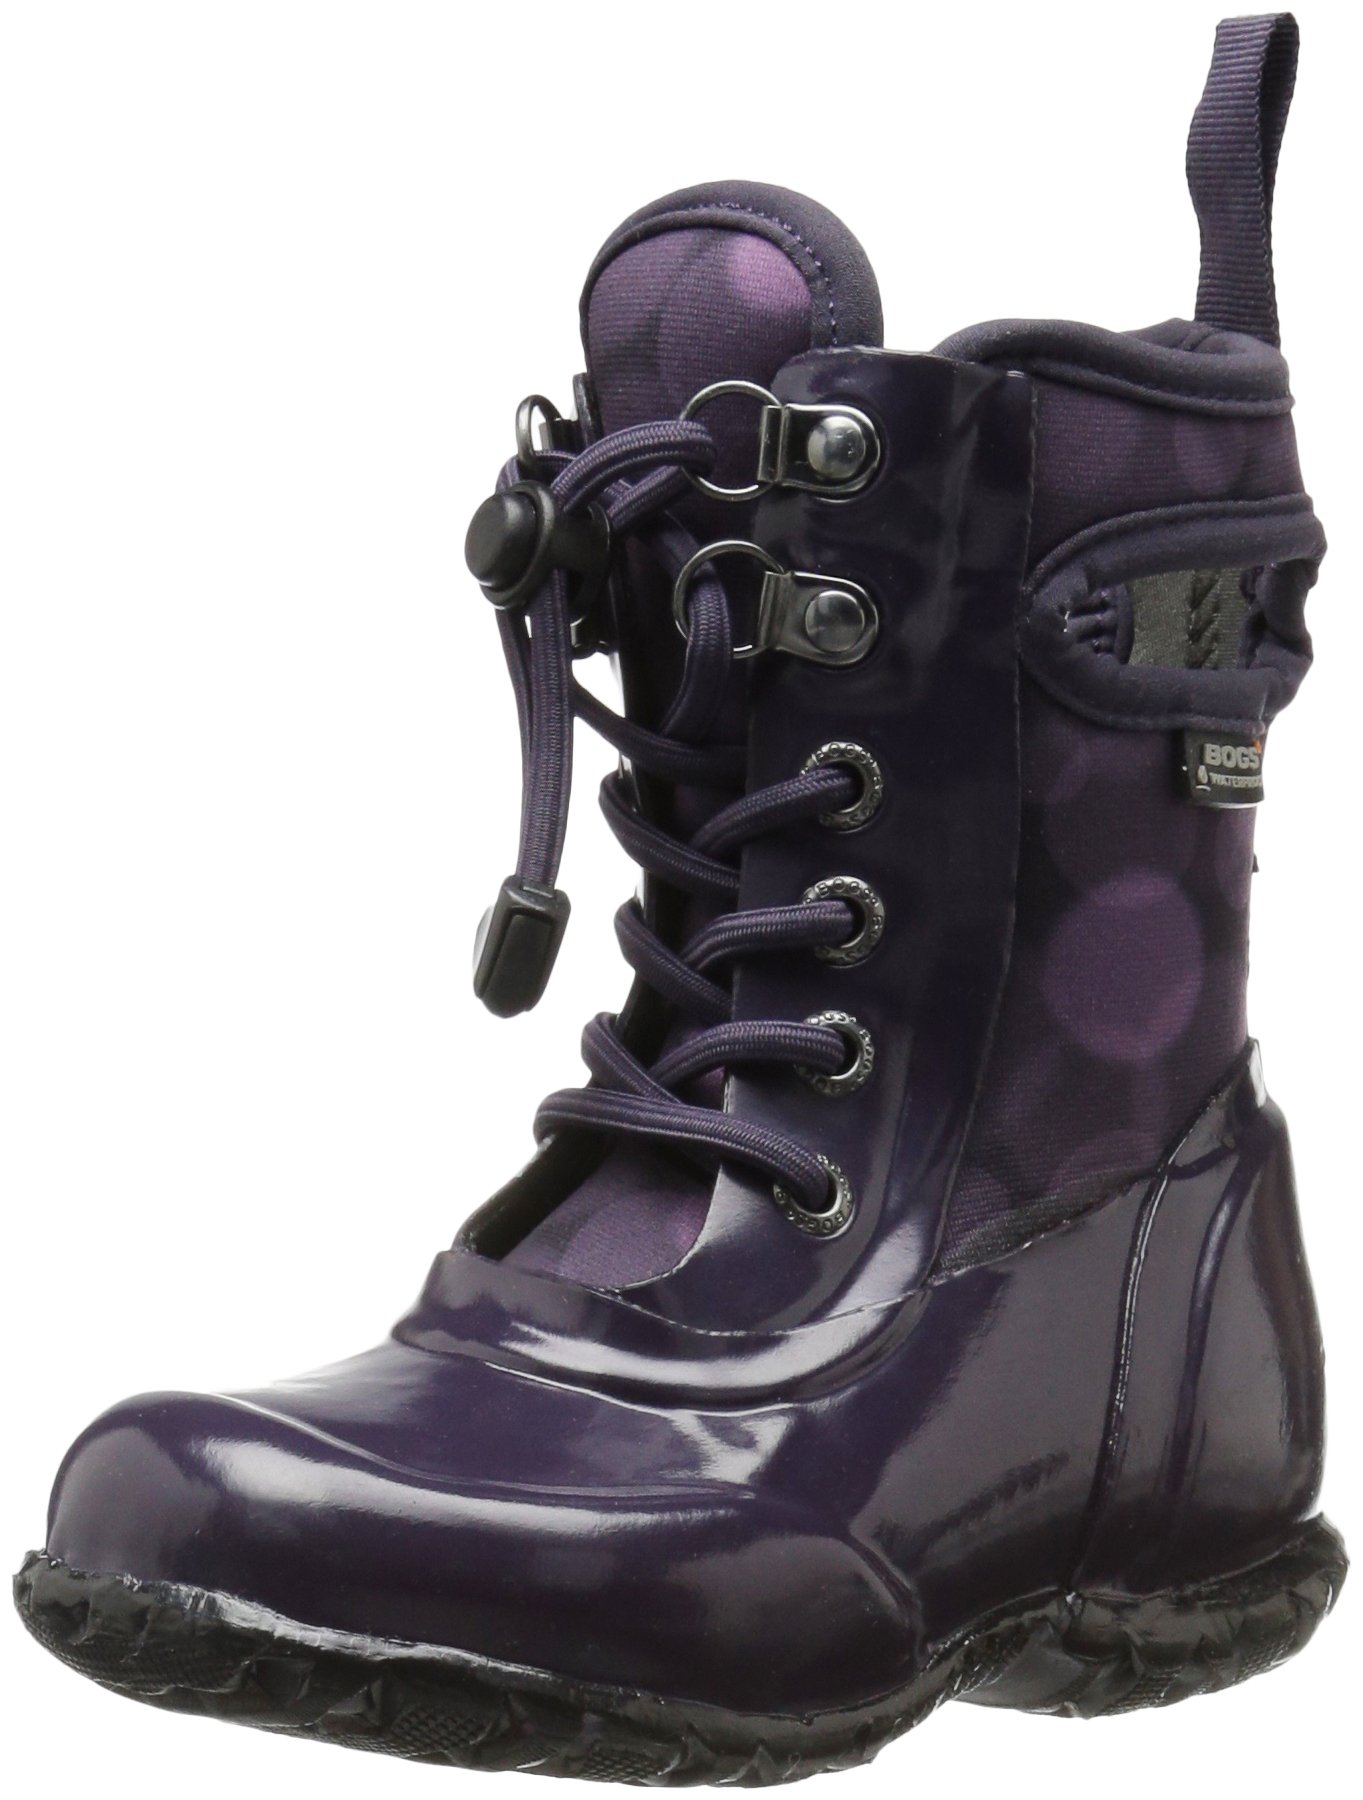 Bogs Sidney Kids Waterproof Lace Up Rain Boot for Boys and Girls, Eggplant/Multi, 7 M US Toddler